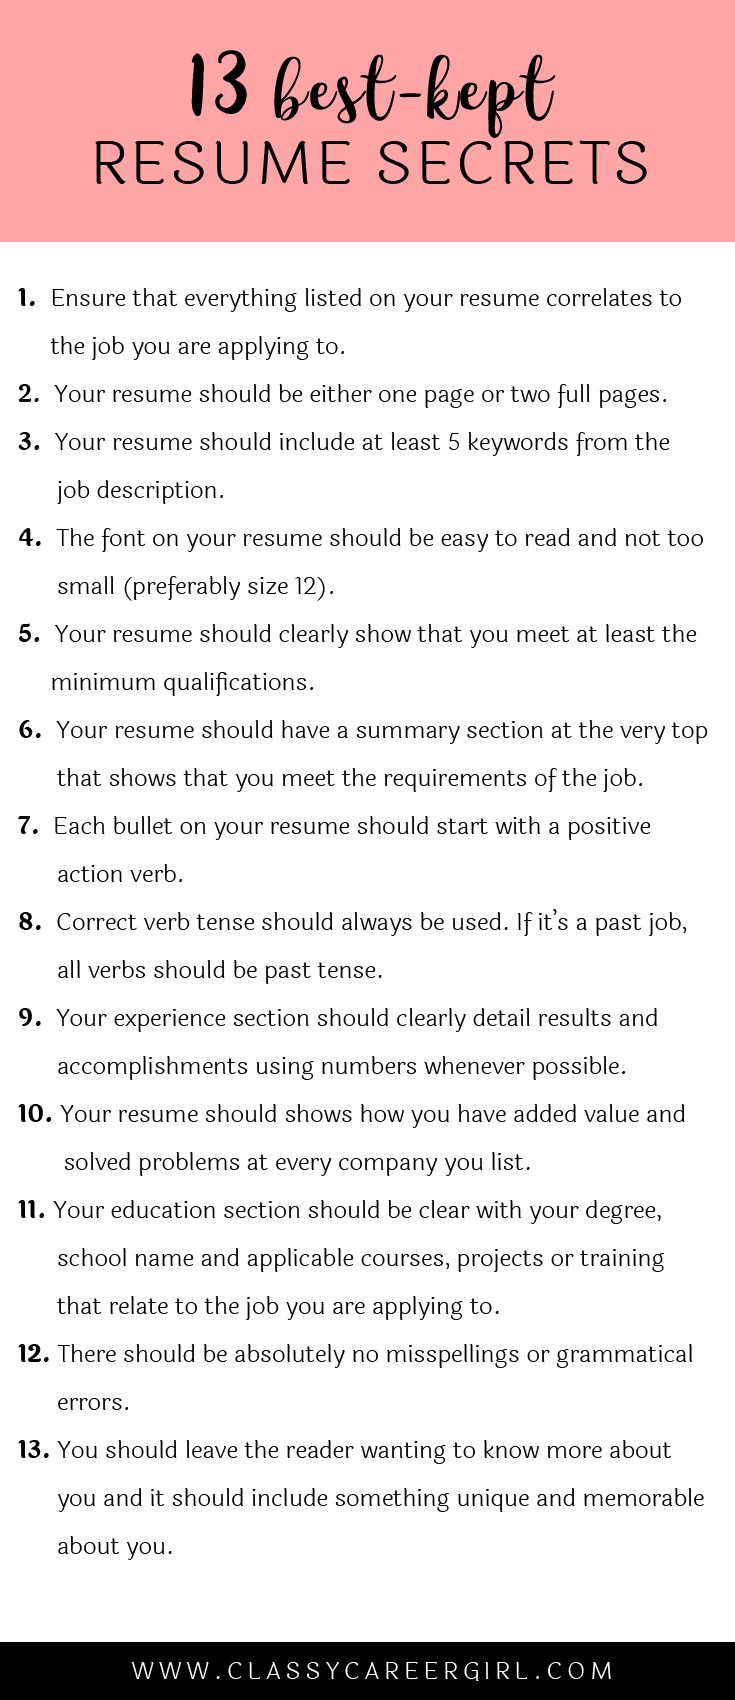 Picnictoimpeachus  Winning  Ideas About Resume On Pinterest  Cv Format Resume Cv And  With Inspiring Some Hiring Managers Will Toss Your Resume Out If You Dont Know These  With Astonishing How To Make A Creative Resume Also Nursing Assistant Resume Sample In Addition Substitute Teacher Duties Resume And Updating A Resume As Well As Harvard Business School Resume Template Additionally Objective On Resumes From Pinterestcom With Picnictoimpeachus  Inspiring  Ideas About Resume On Pinterest  Cv Format Resume Cv And  With Astonishing Some Hiring Managers Will Toss Your Resume Out If You Dont Know These  And Winning How To Make A Creative Resume Also Nursing Assistant Resume Sample In Addition Substitute Teacher Duties Resume From Pinterestcom